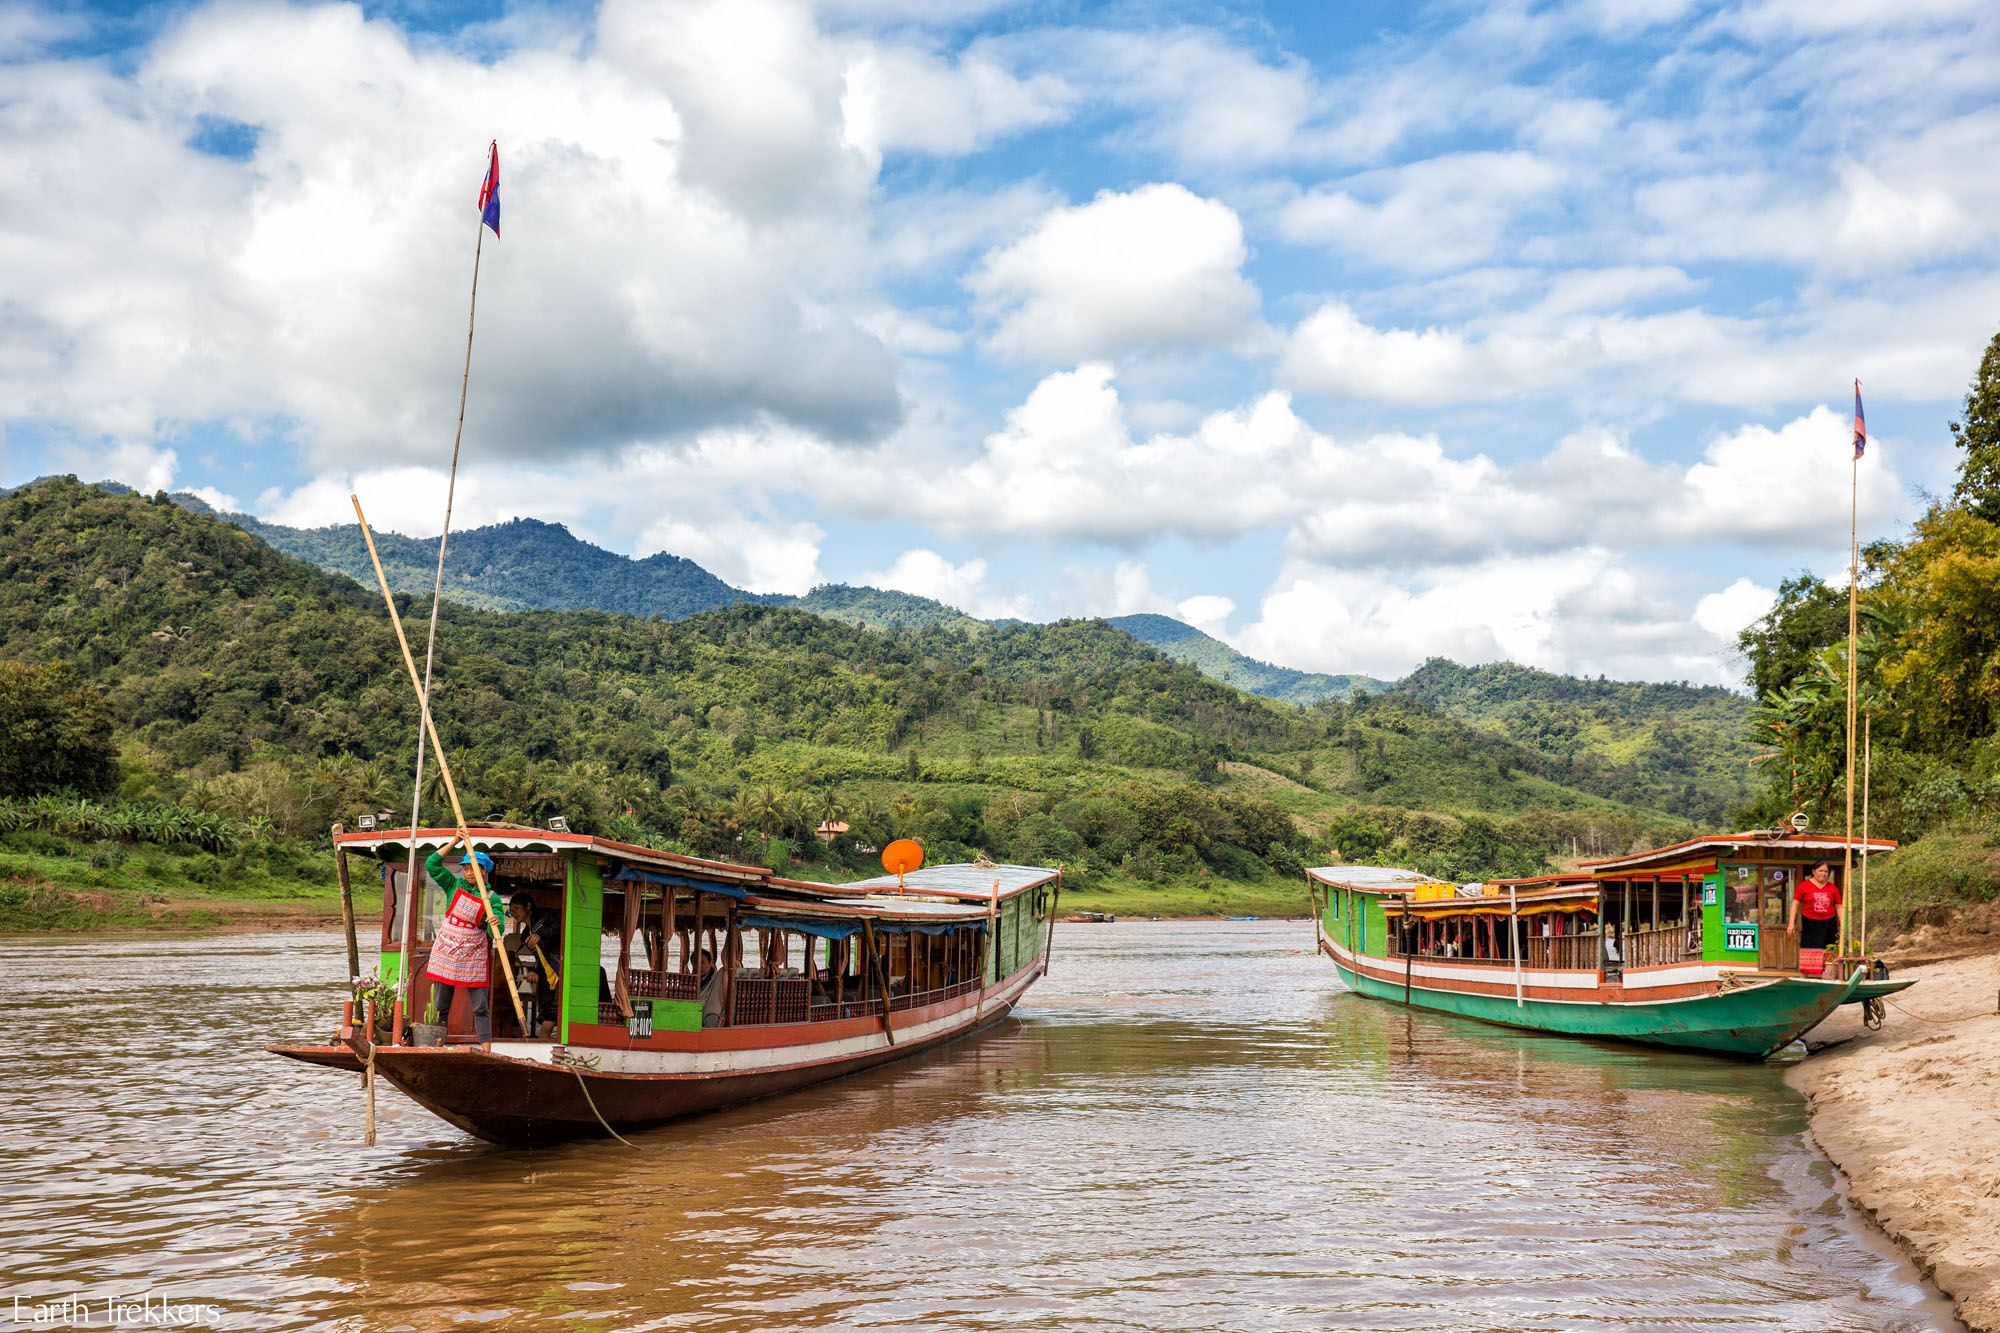 Taking the Slow Boat Down the Mekong River